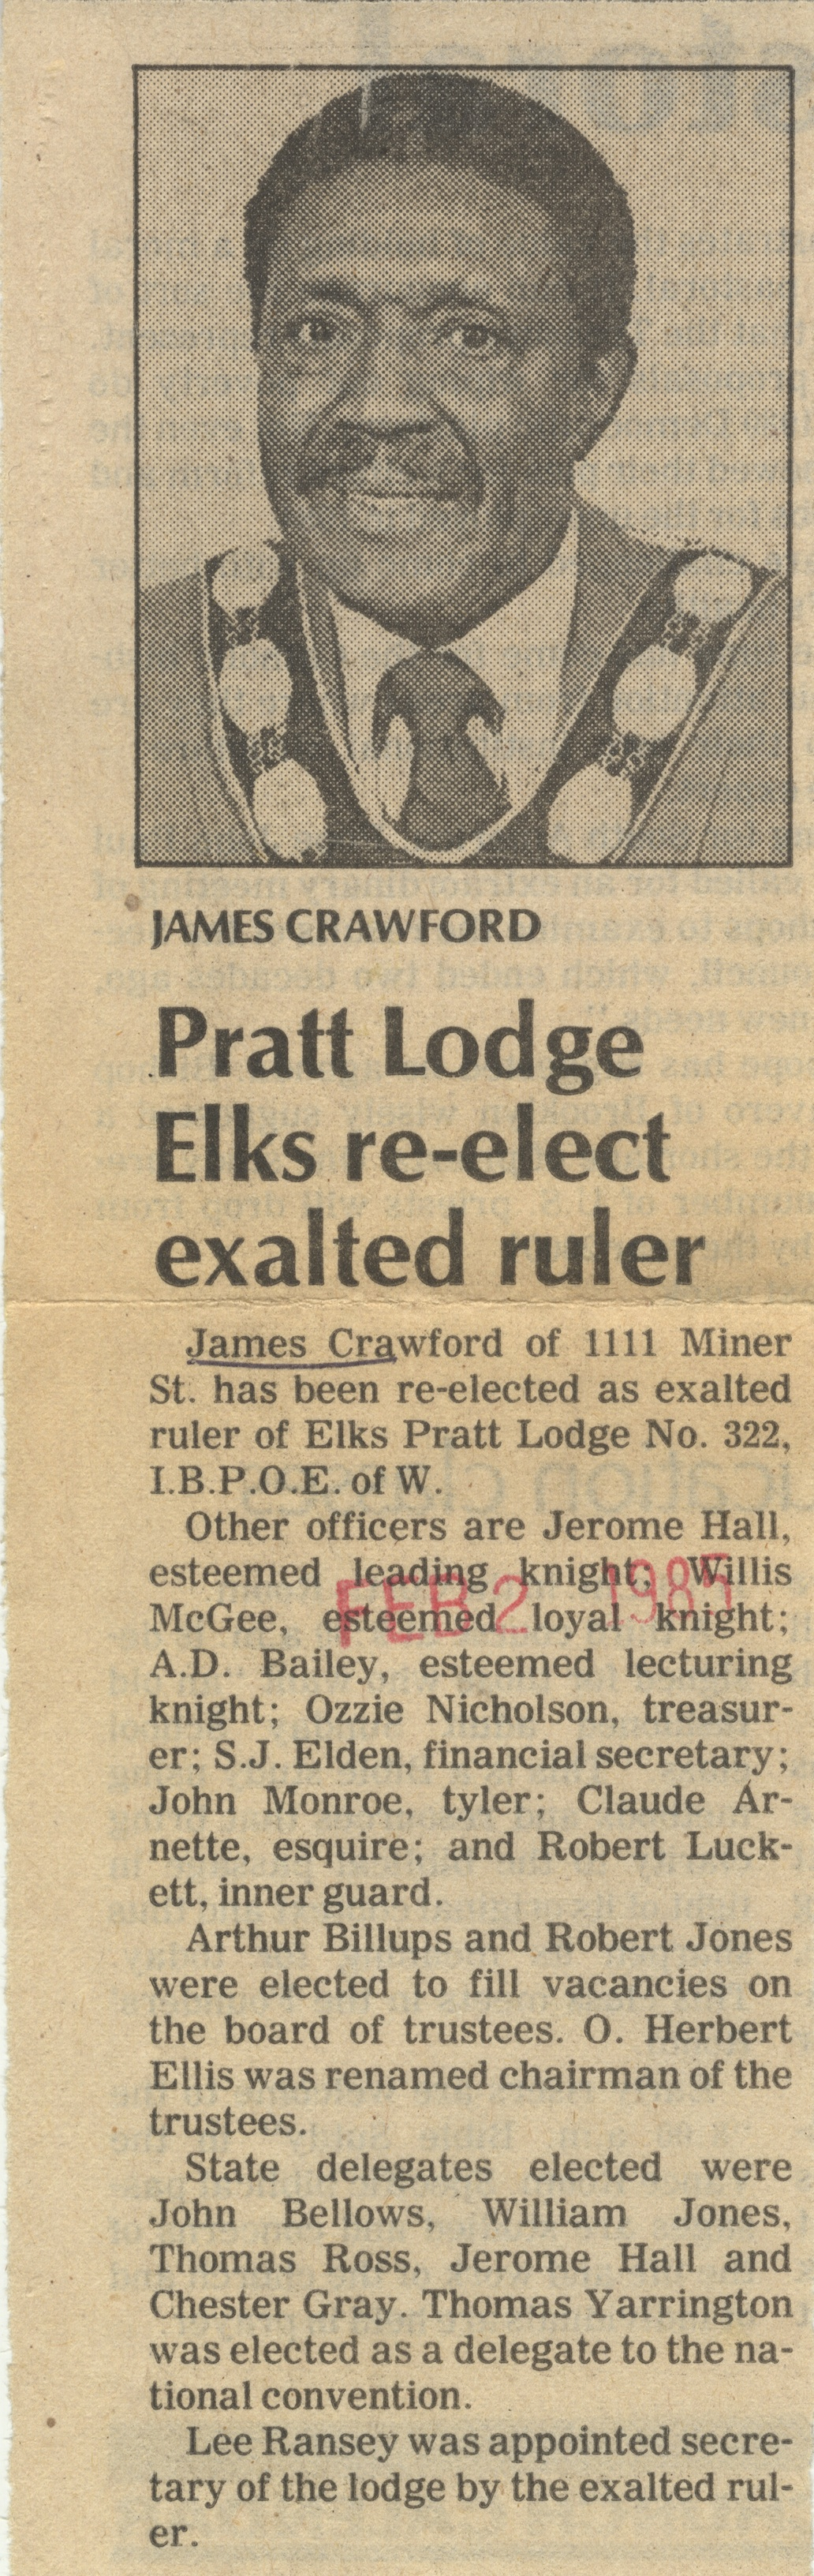 Pratt Lodge Elks Re-Elect Exalted Ruler image